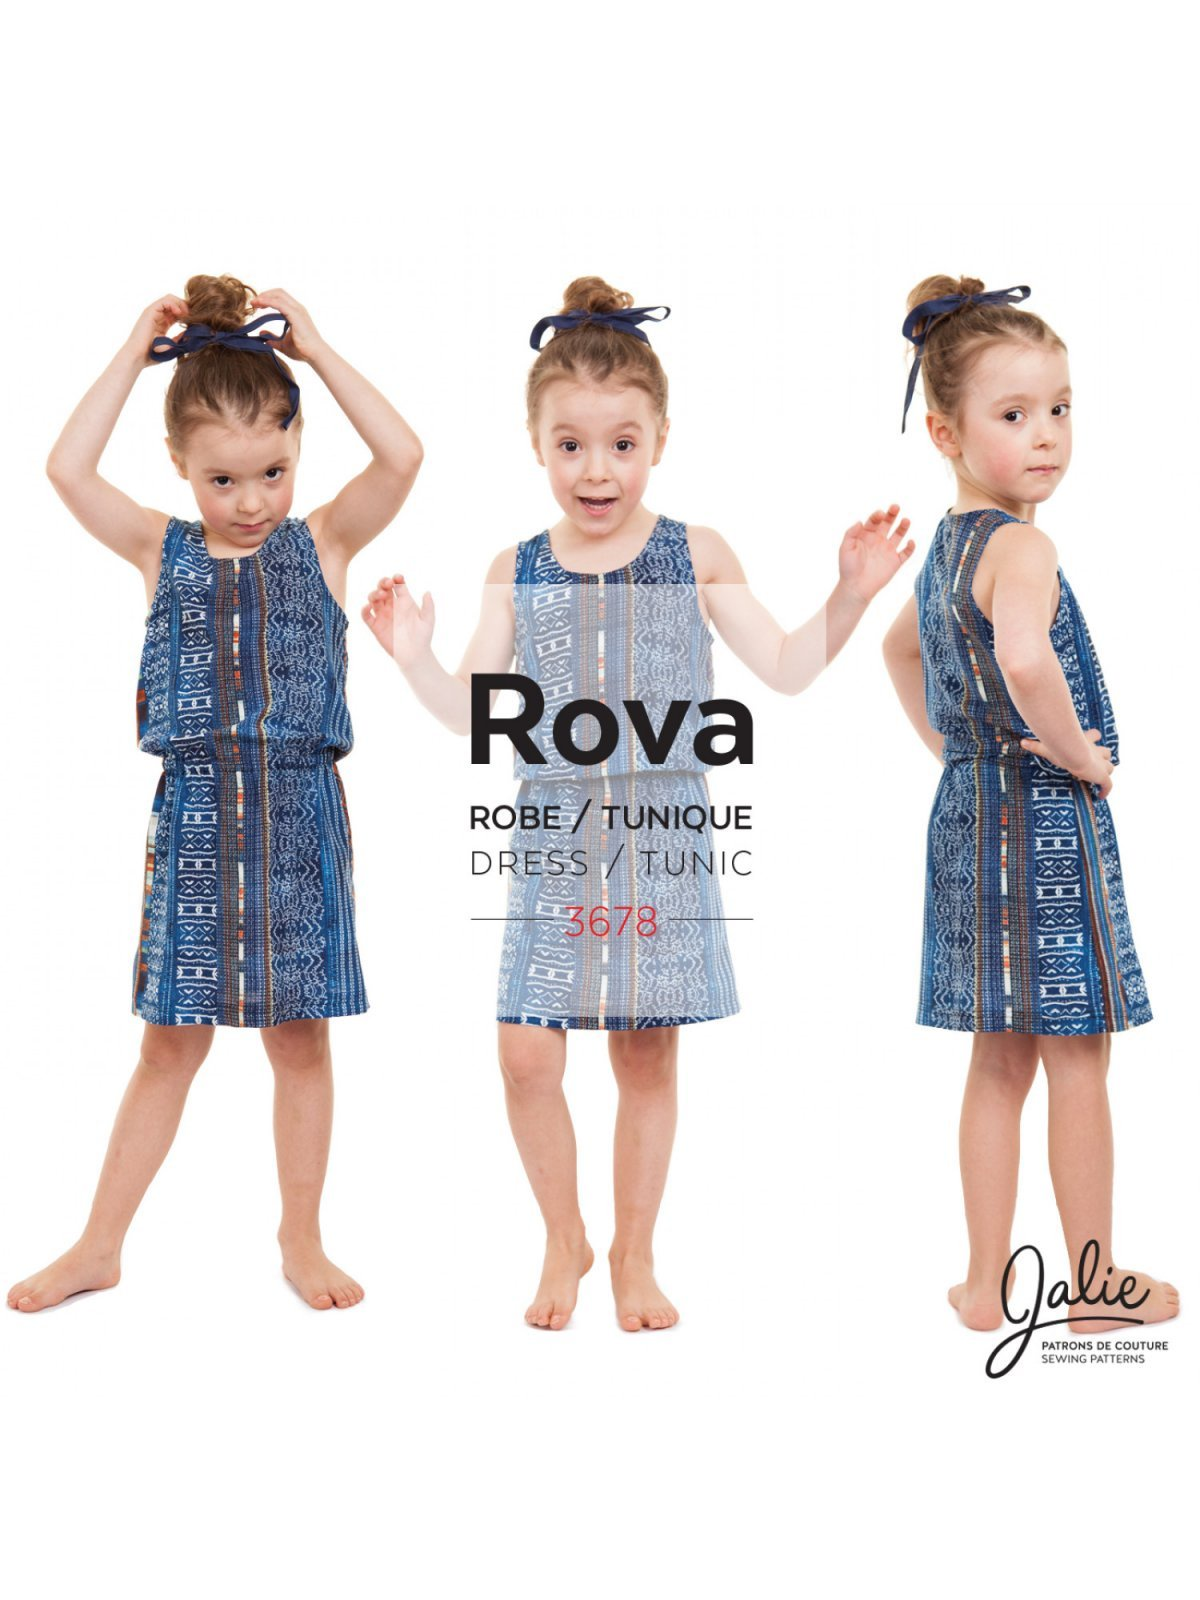 Rova Tunic and Dress - Fabrications